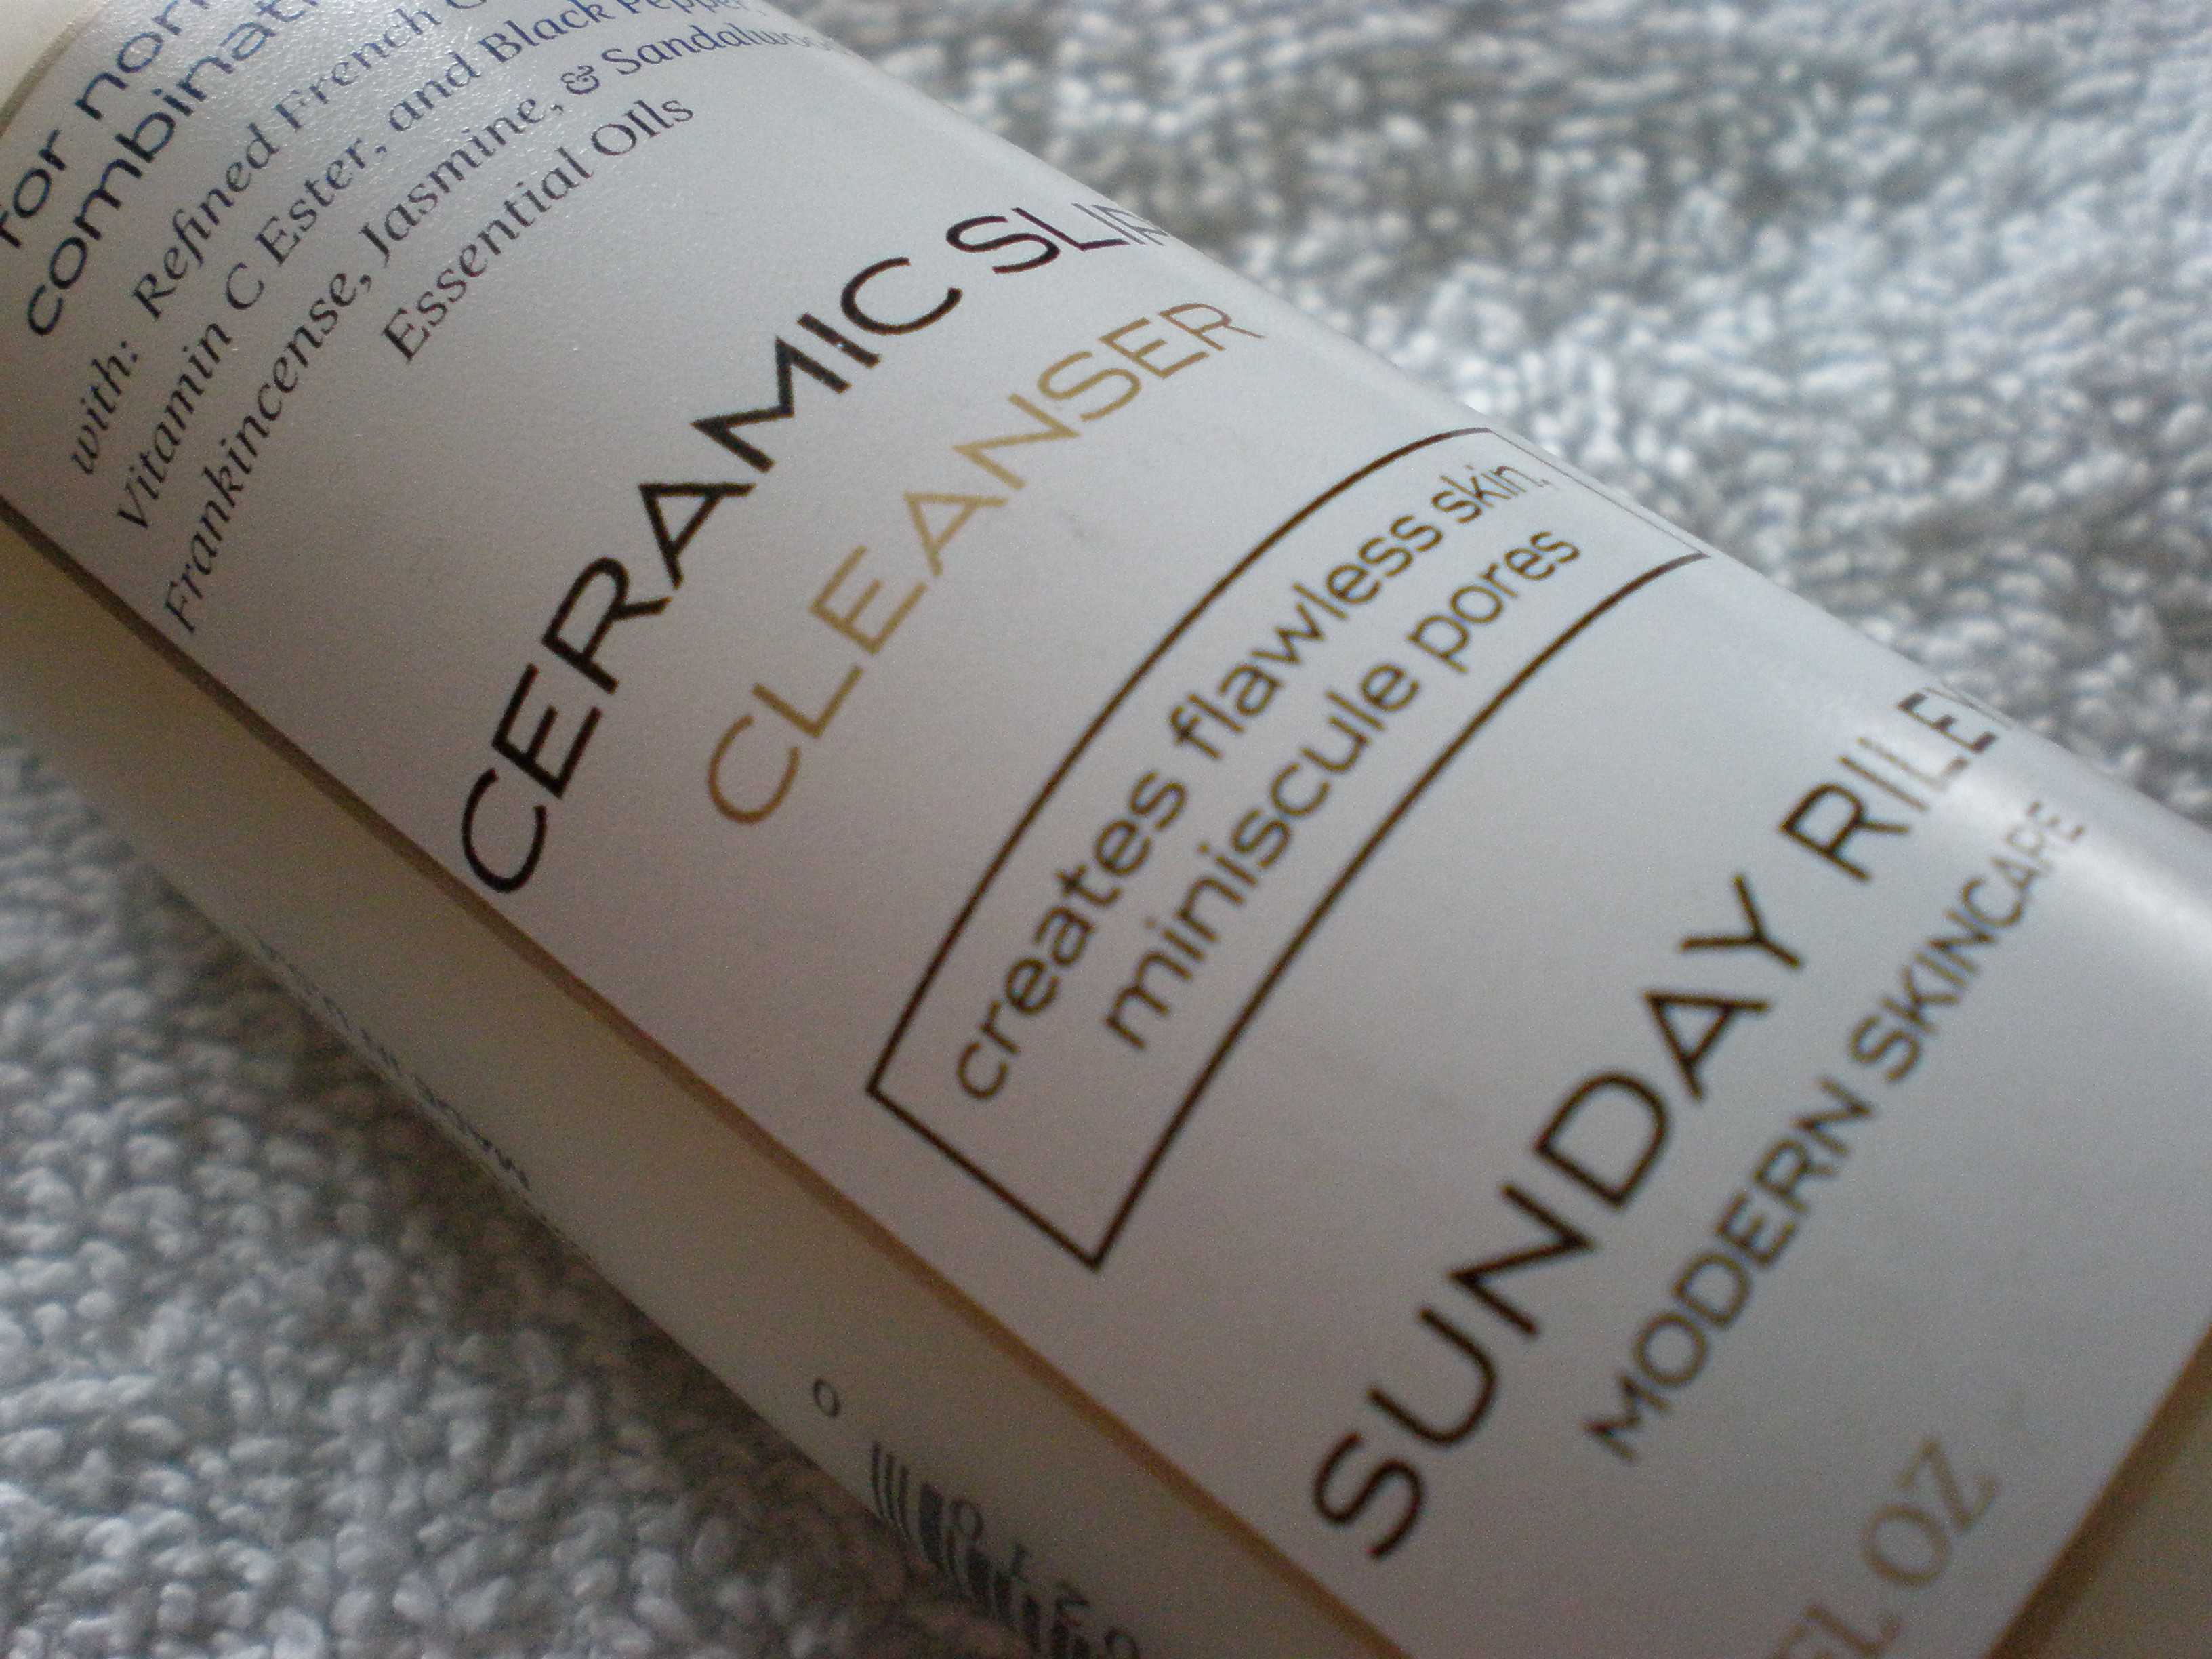 Sunday Riley Ceramic Slip Cleanser Review   The Beauty Idealist